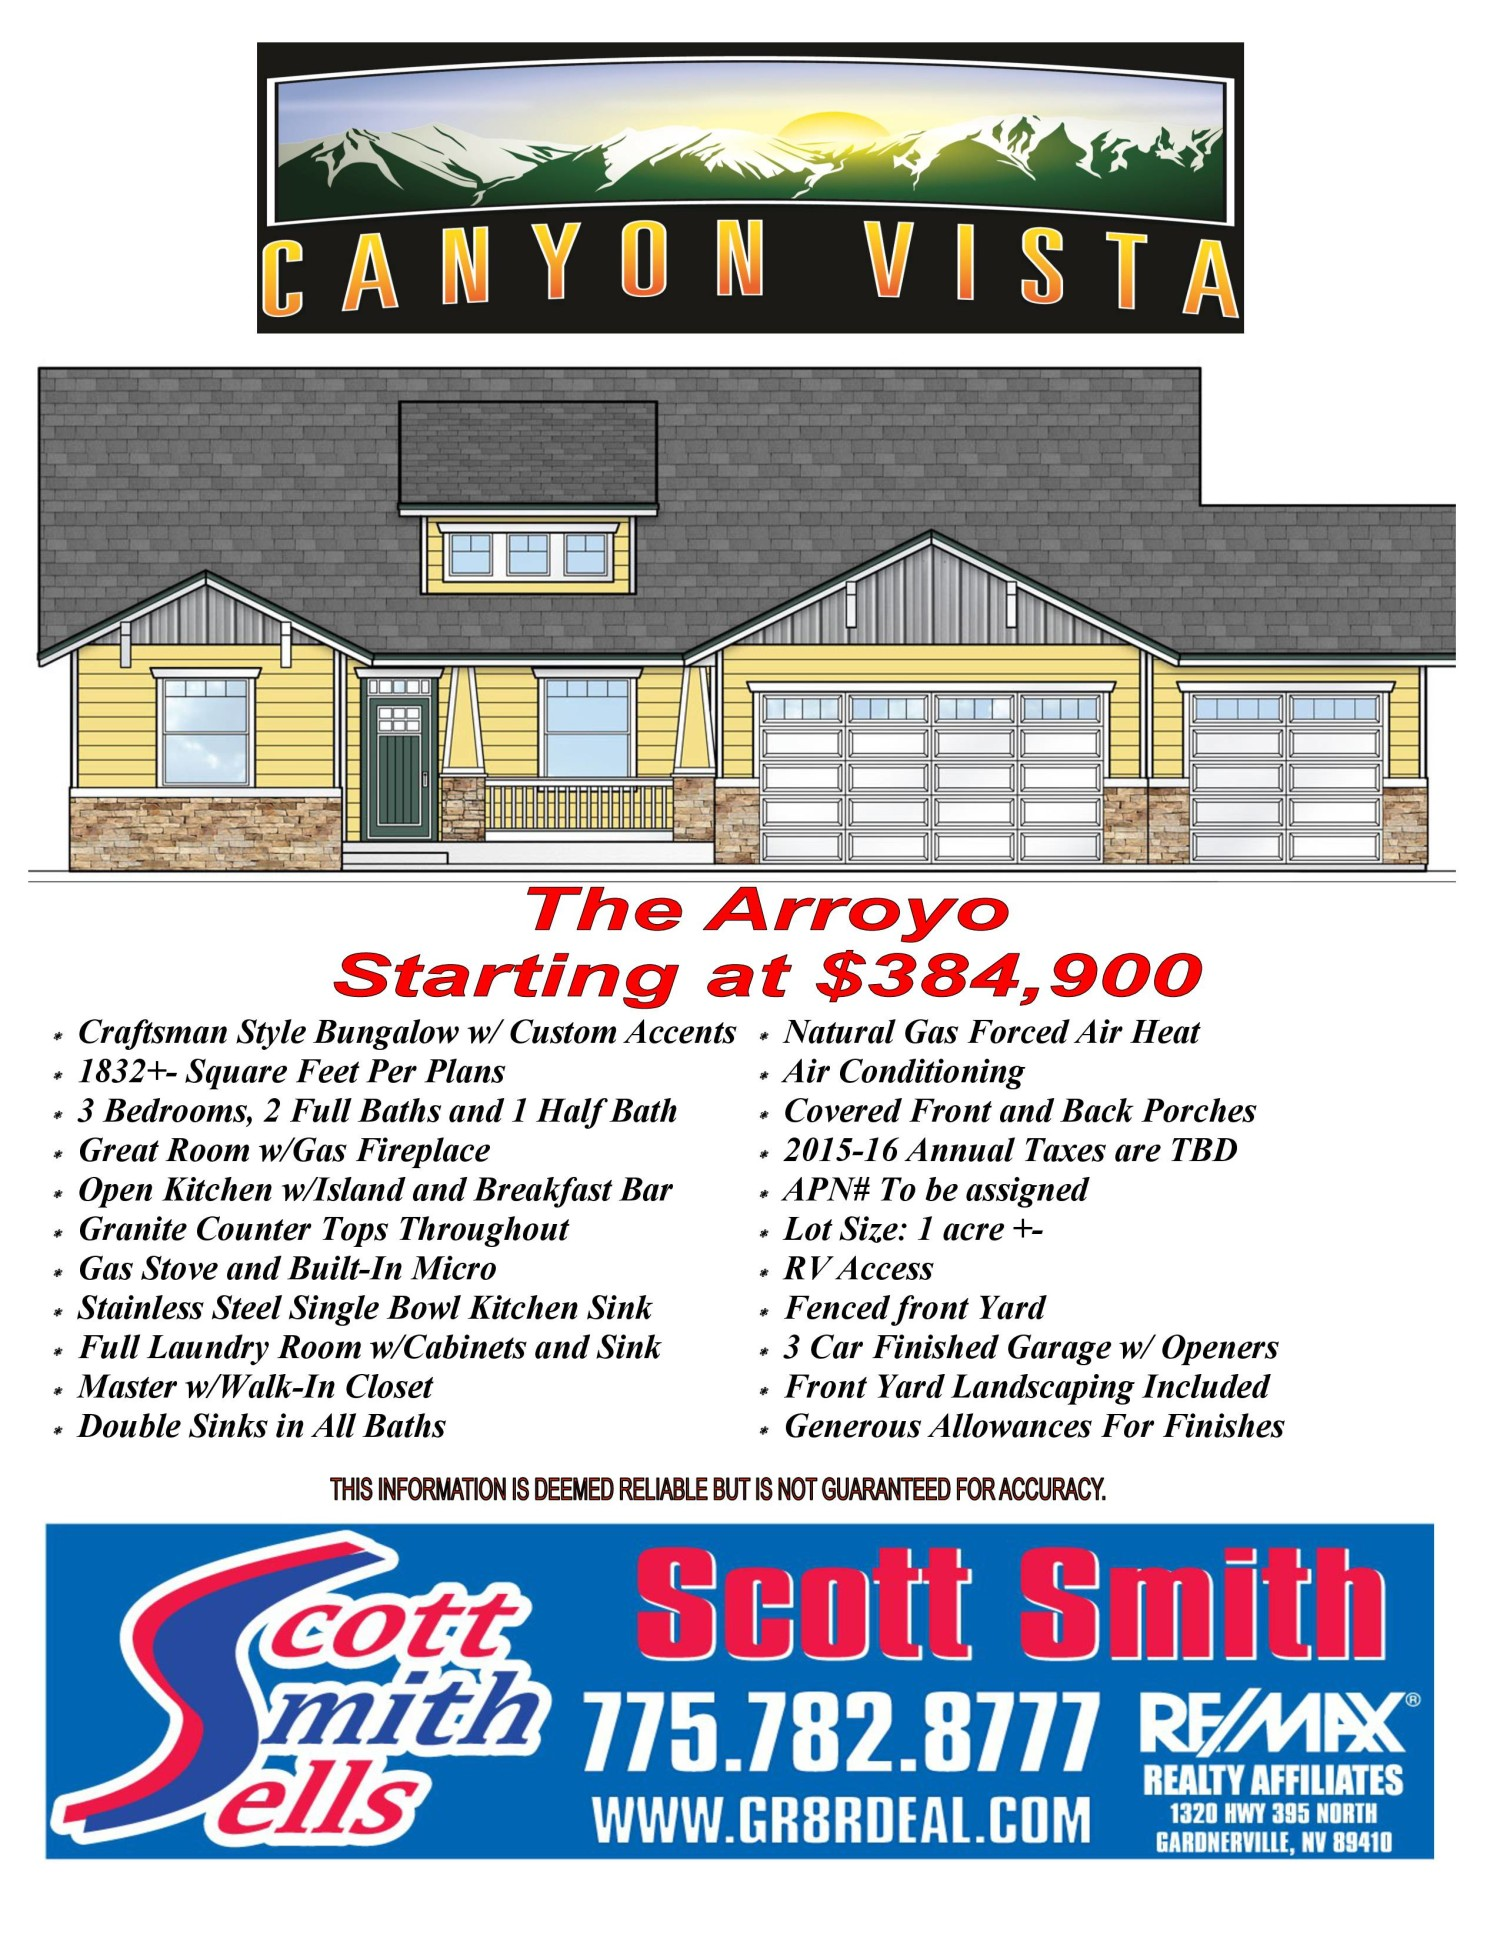 The Arroyo - A Canyon Vista Exclusive in Carson City